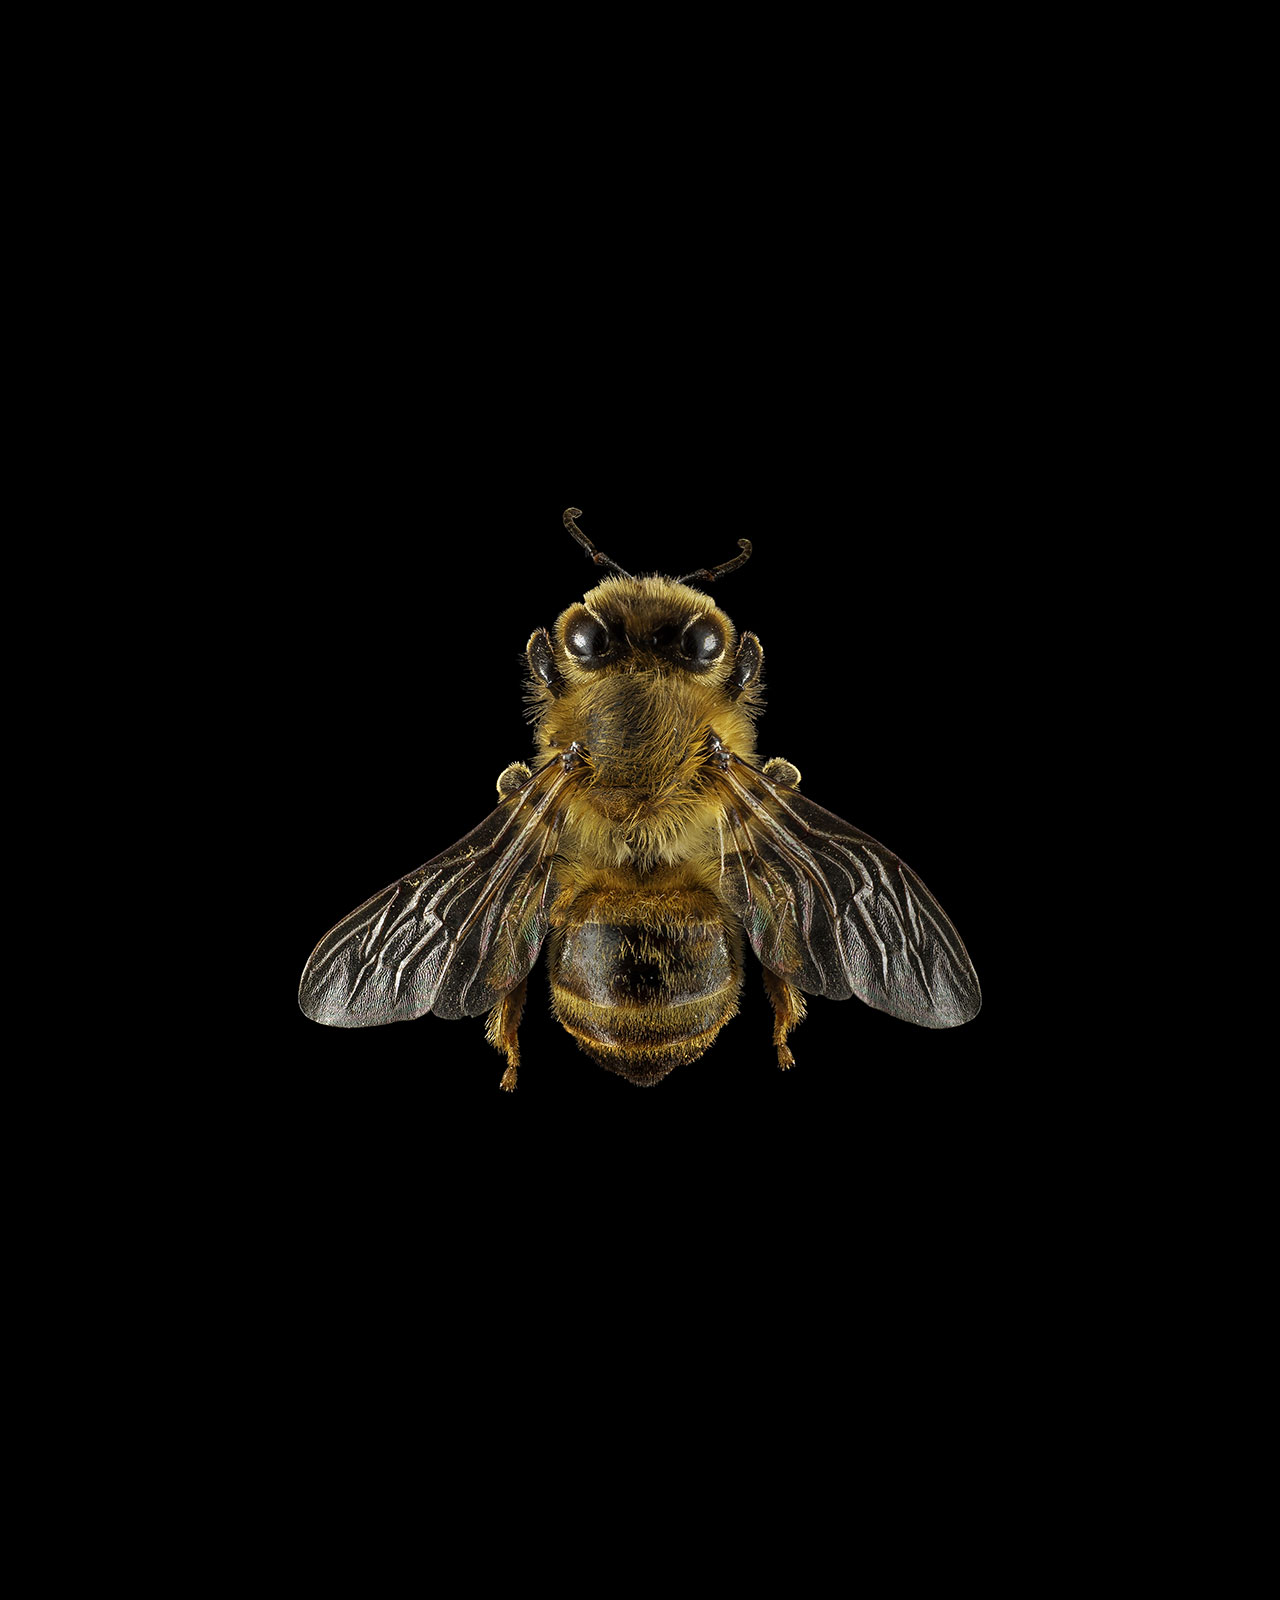 For the Rest of Us A project by Hank Beyer and Alex Sizemore. Honey.